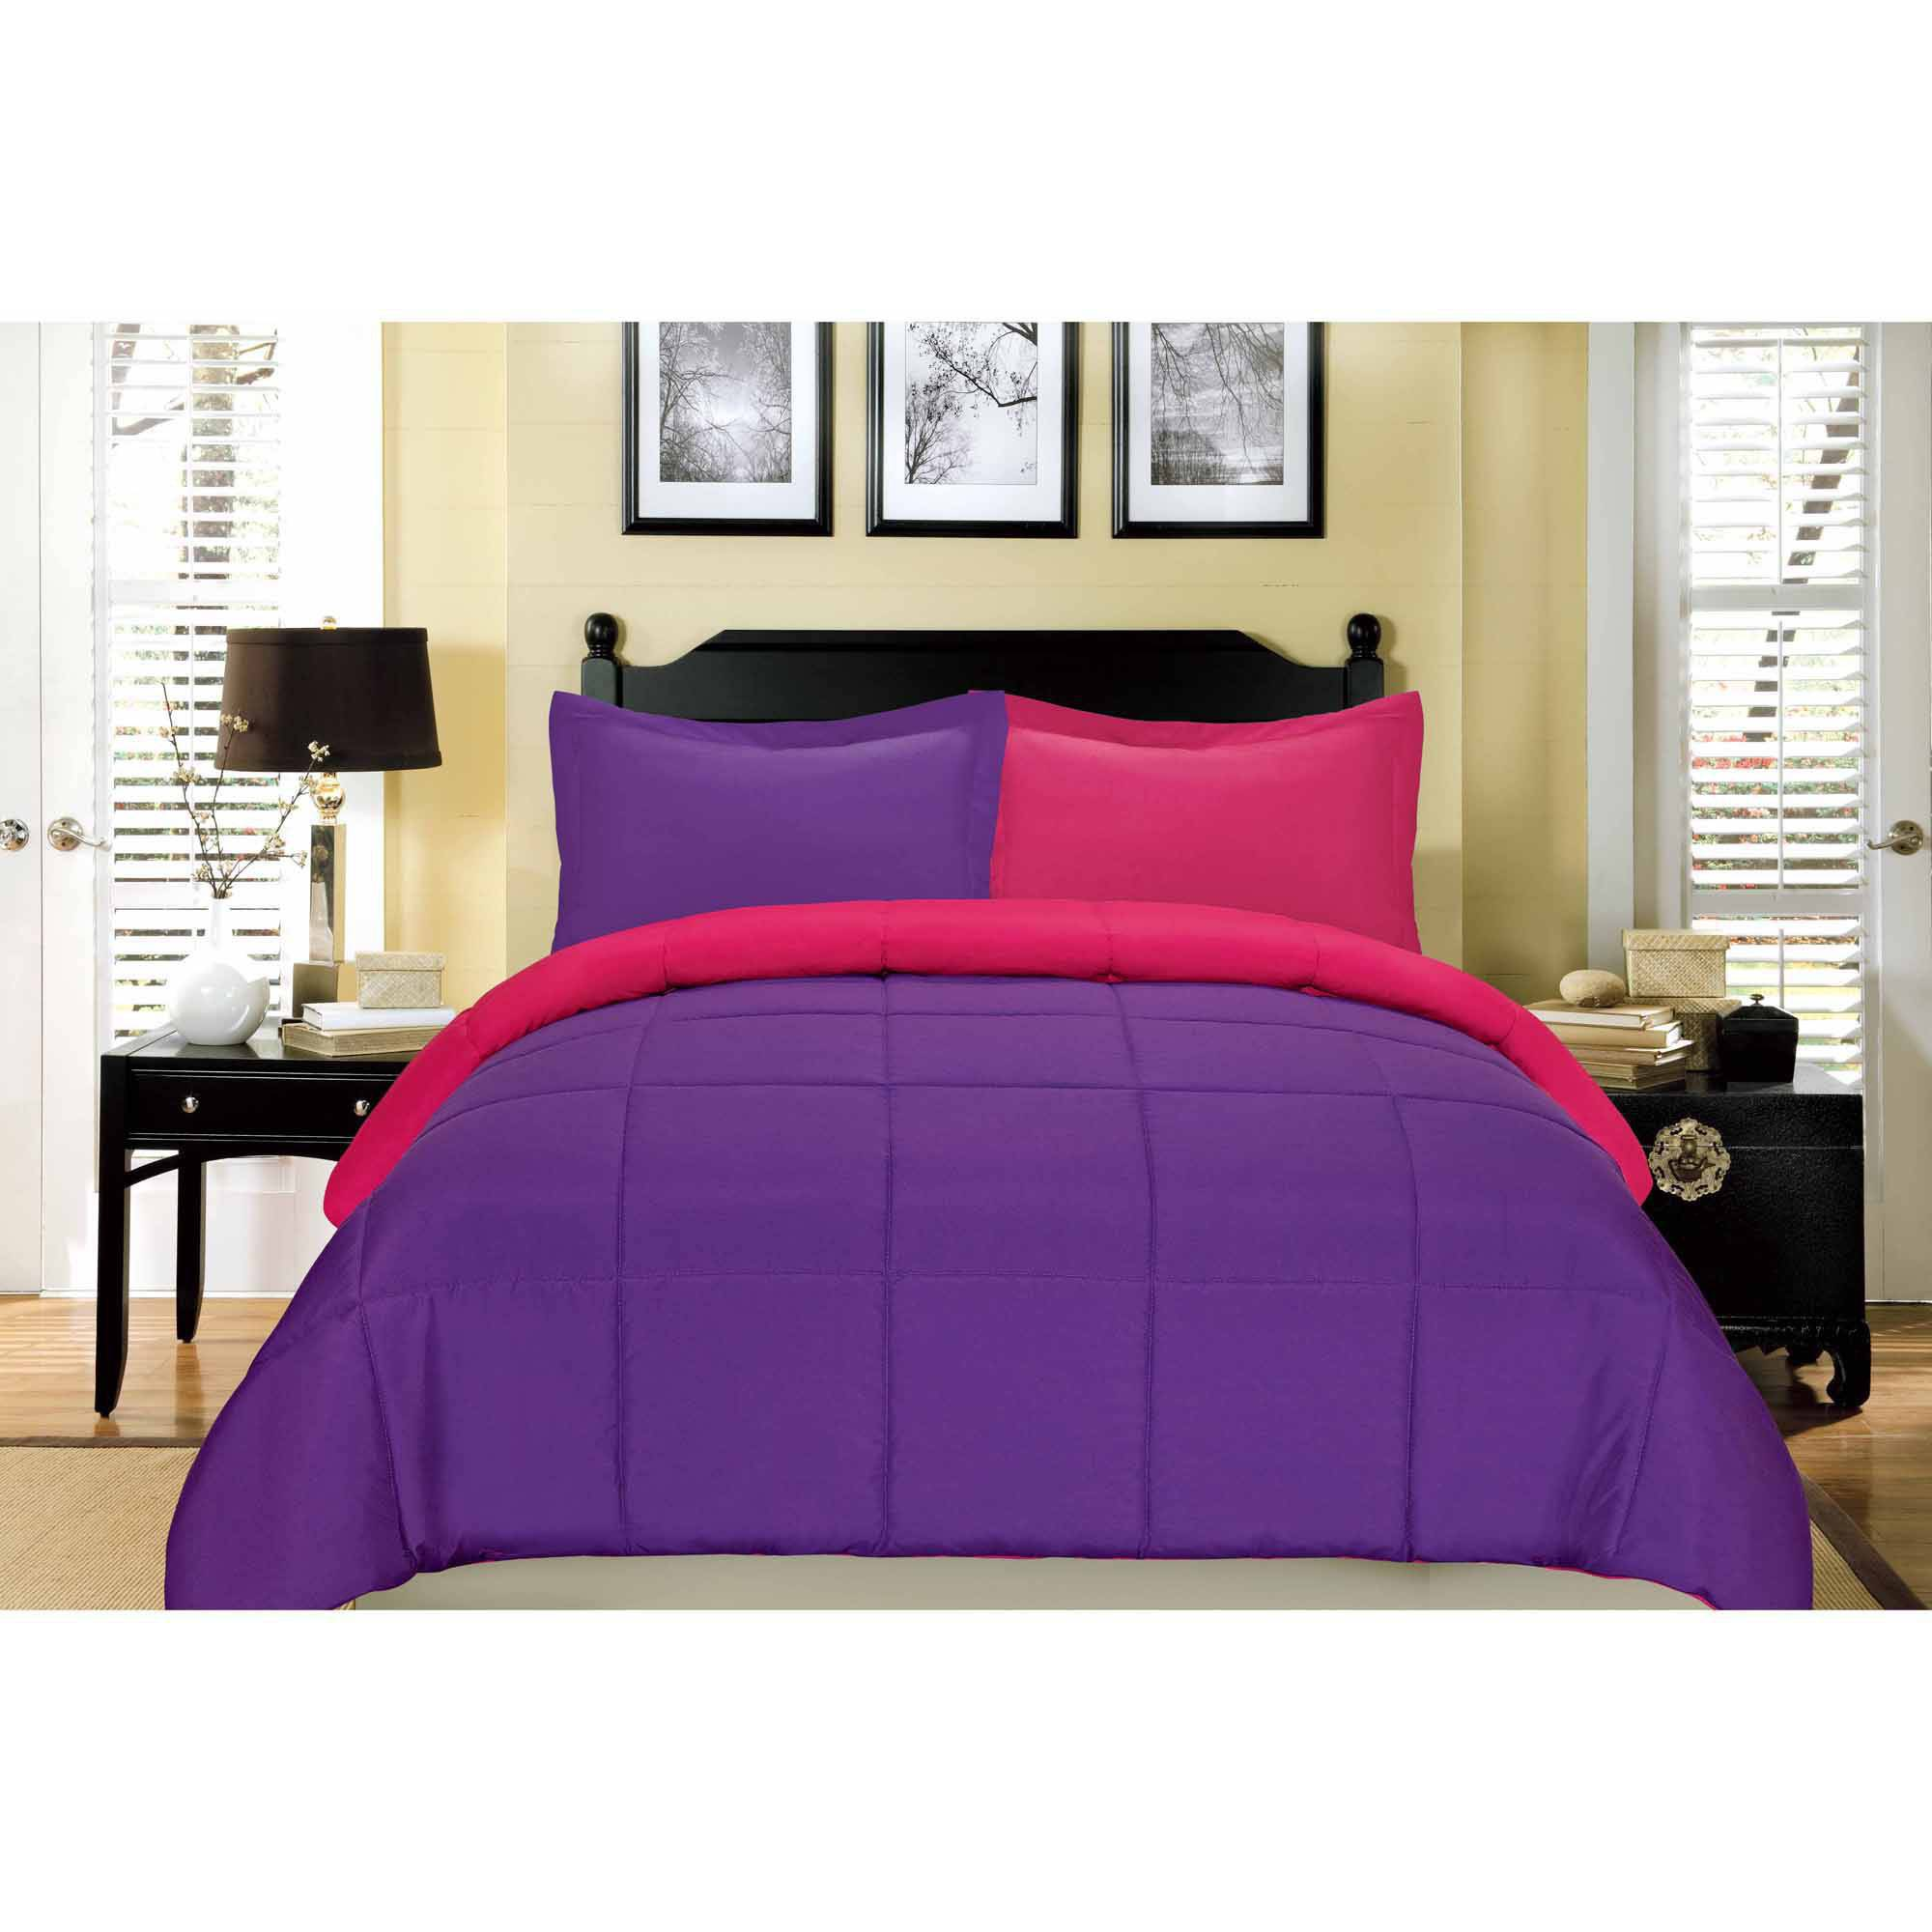 South Bay Reversible Down Alternative Comforter Mini Set